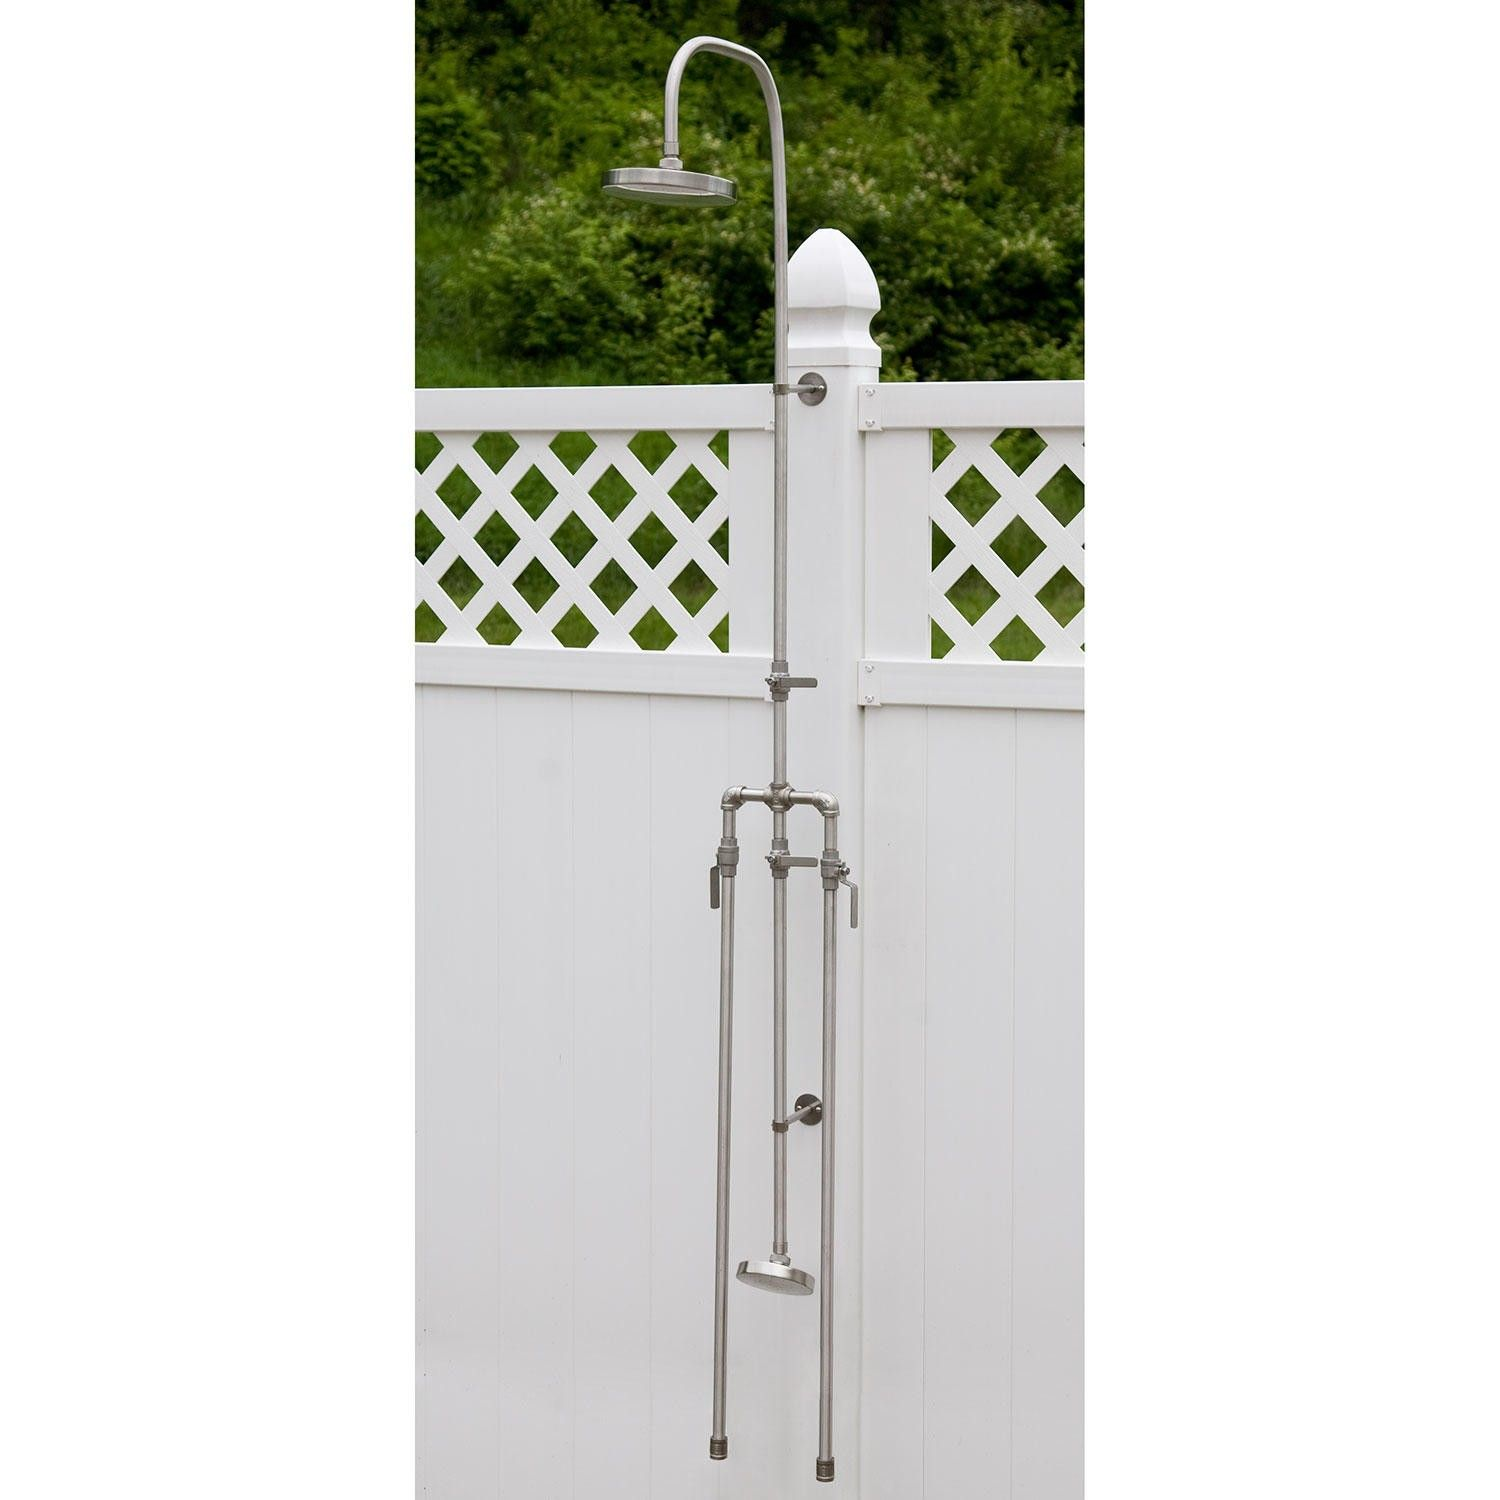 We Can Reconstruct This With Br Parts Maybe Deluxe Outdoor Shower Mixer Foot